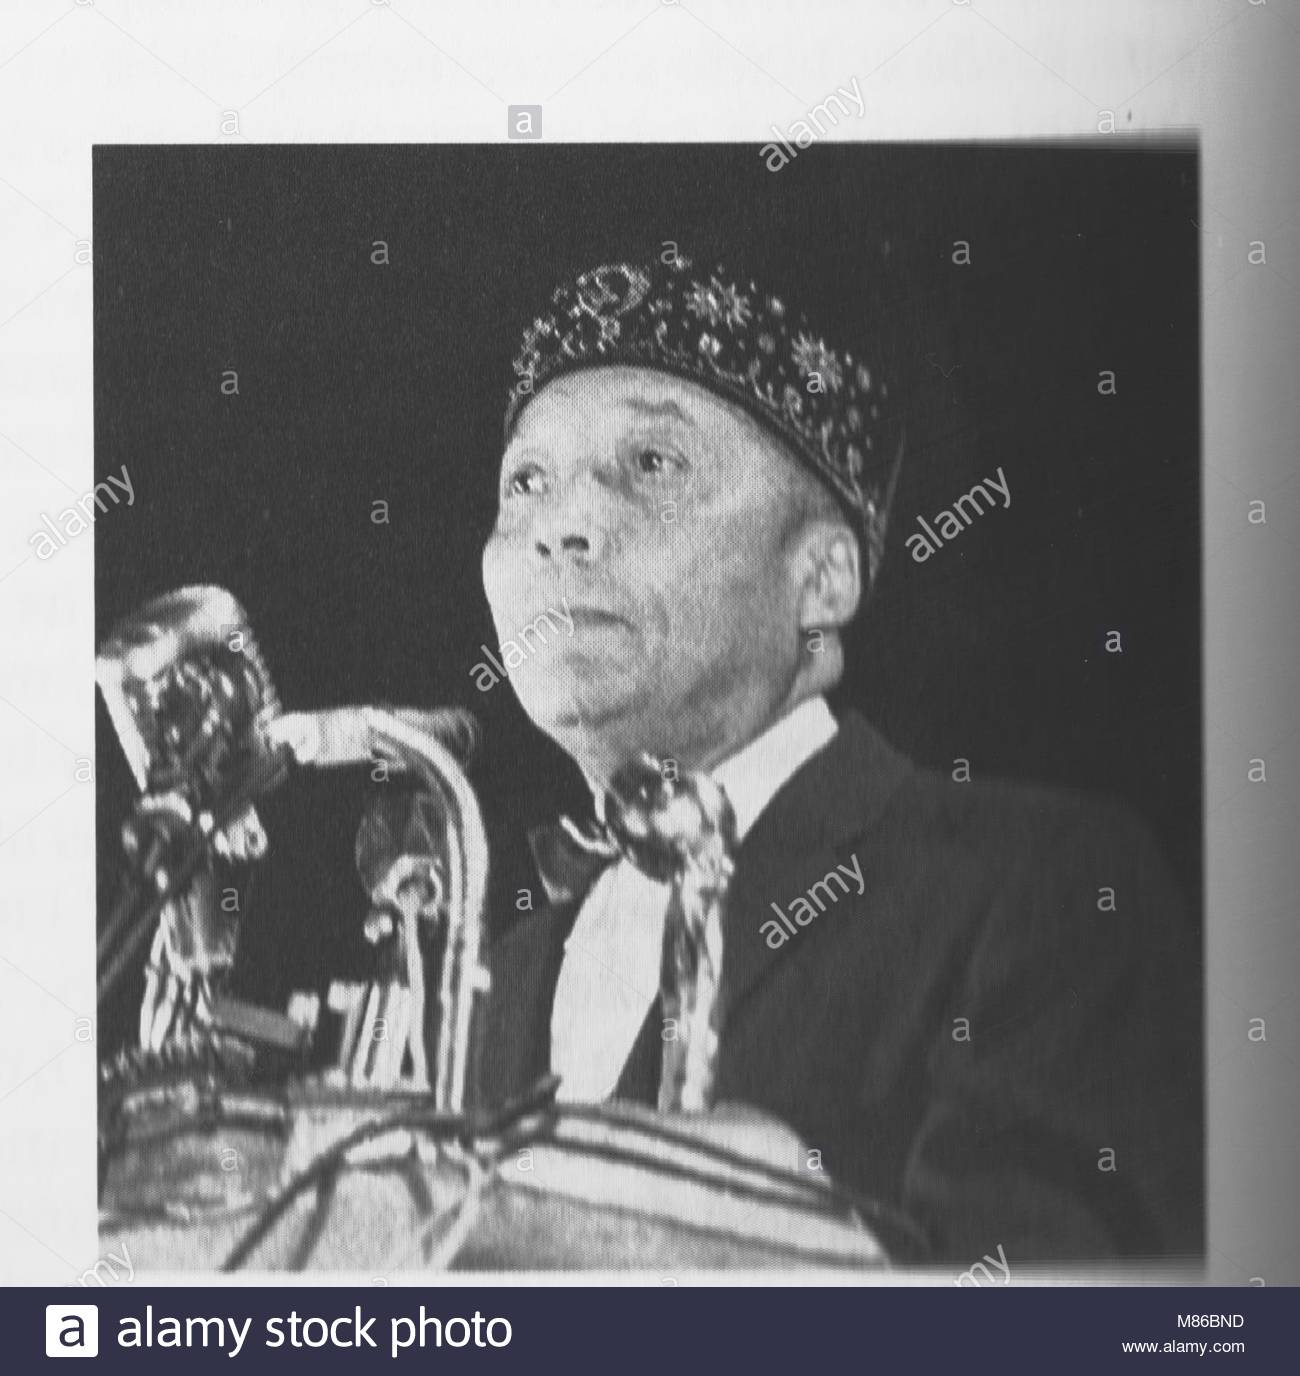 the nation of islams elijah muhammad The nation of islam  elijah muhammad took over leadership of fard's group in detroit and changed the name from the allah temple of islam to nation of islam for the next 41 years, until his death in 1975, elijah muhammad served as a mentor to some influential african americans (most notably malcolm x and muhammad ali), grew the small group.